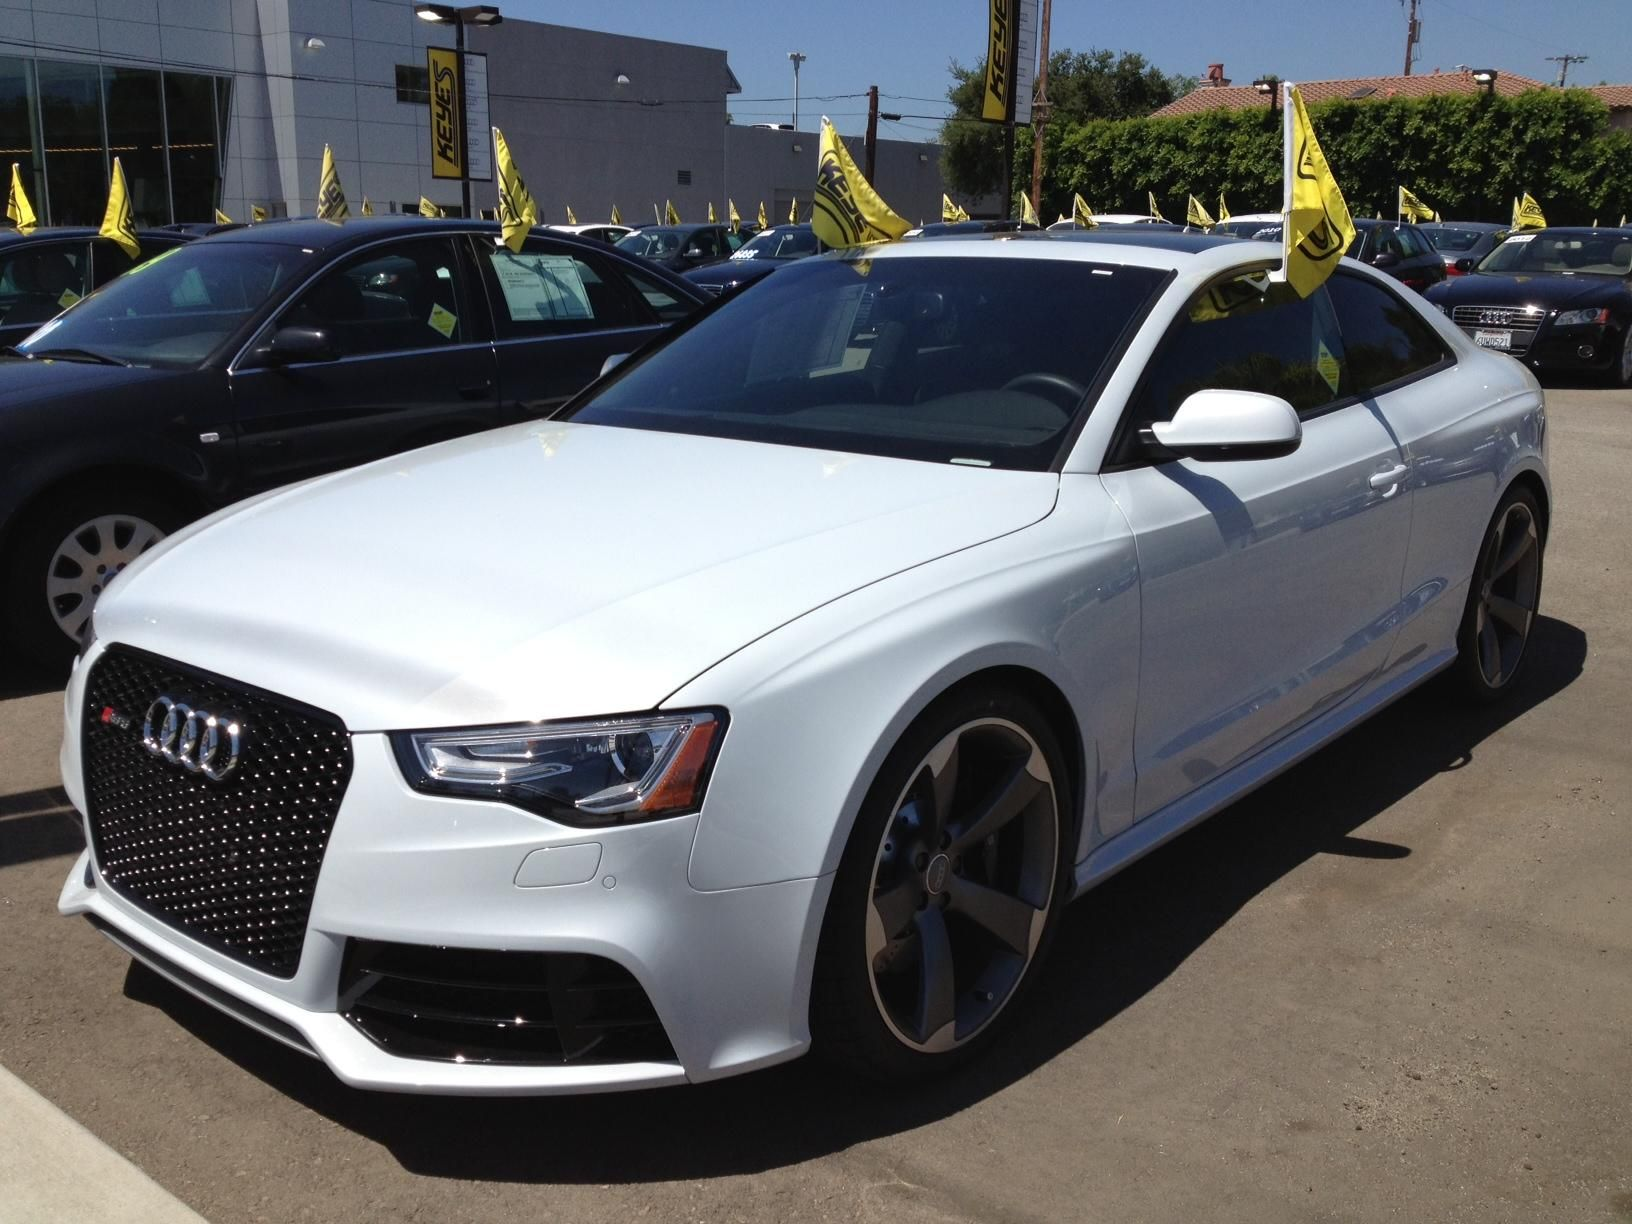 This Pre Owned Rare Audi RS5 Needs A New Home! Whou0027s Interested? Www